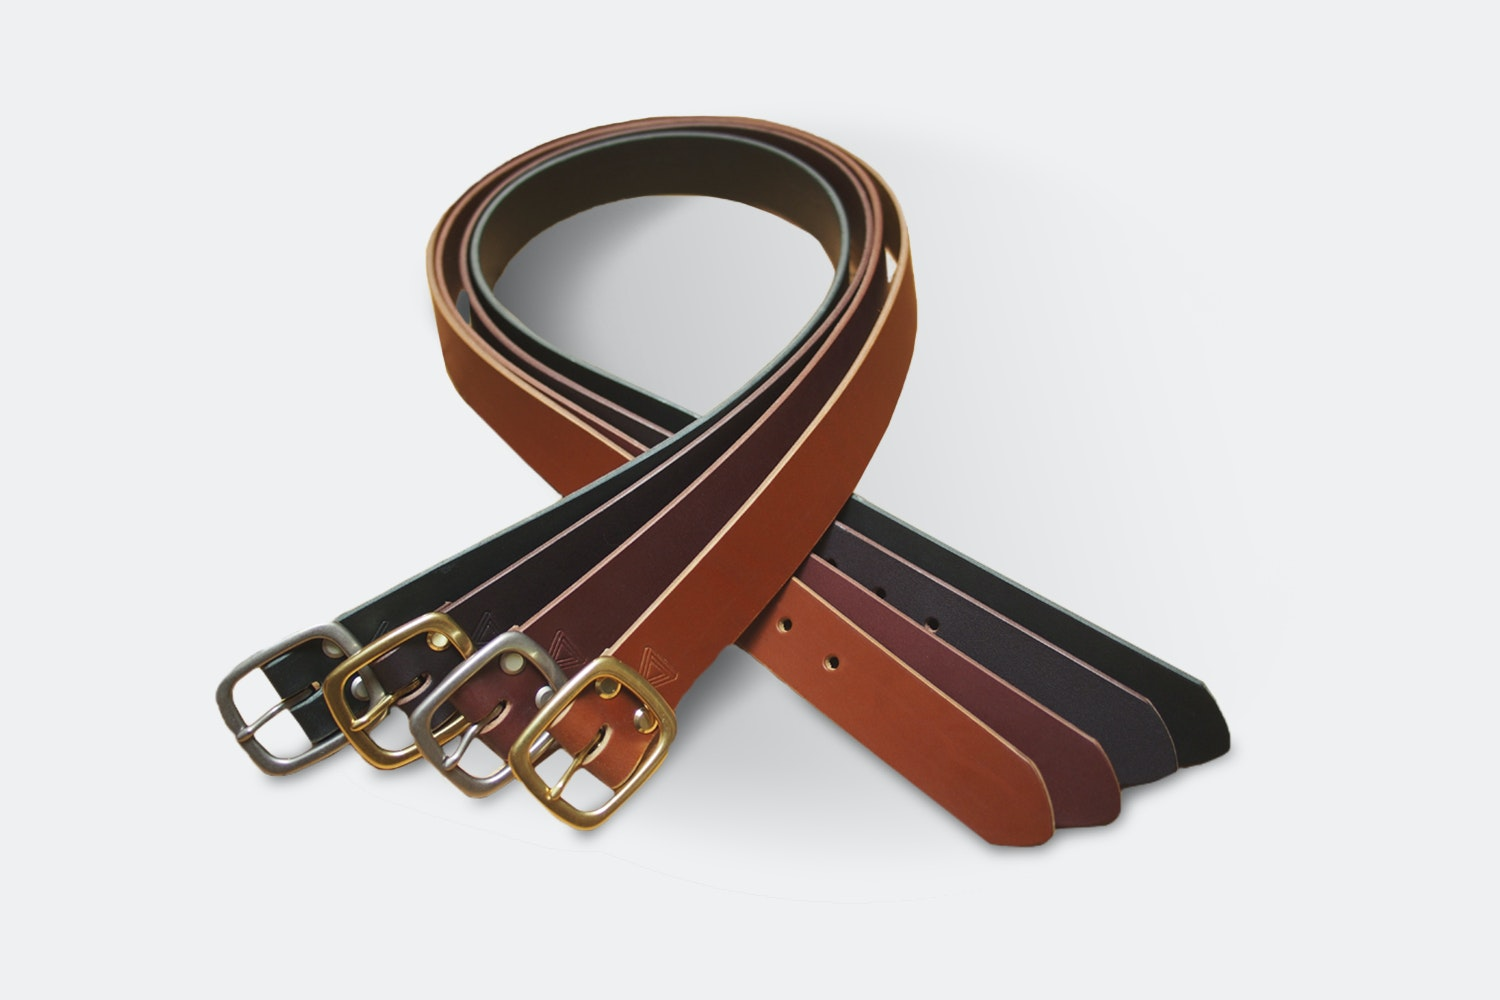 Hollows Leather Road Belt – Massdrop Exclusive